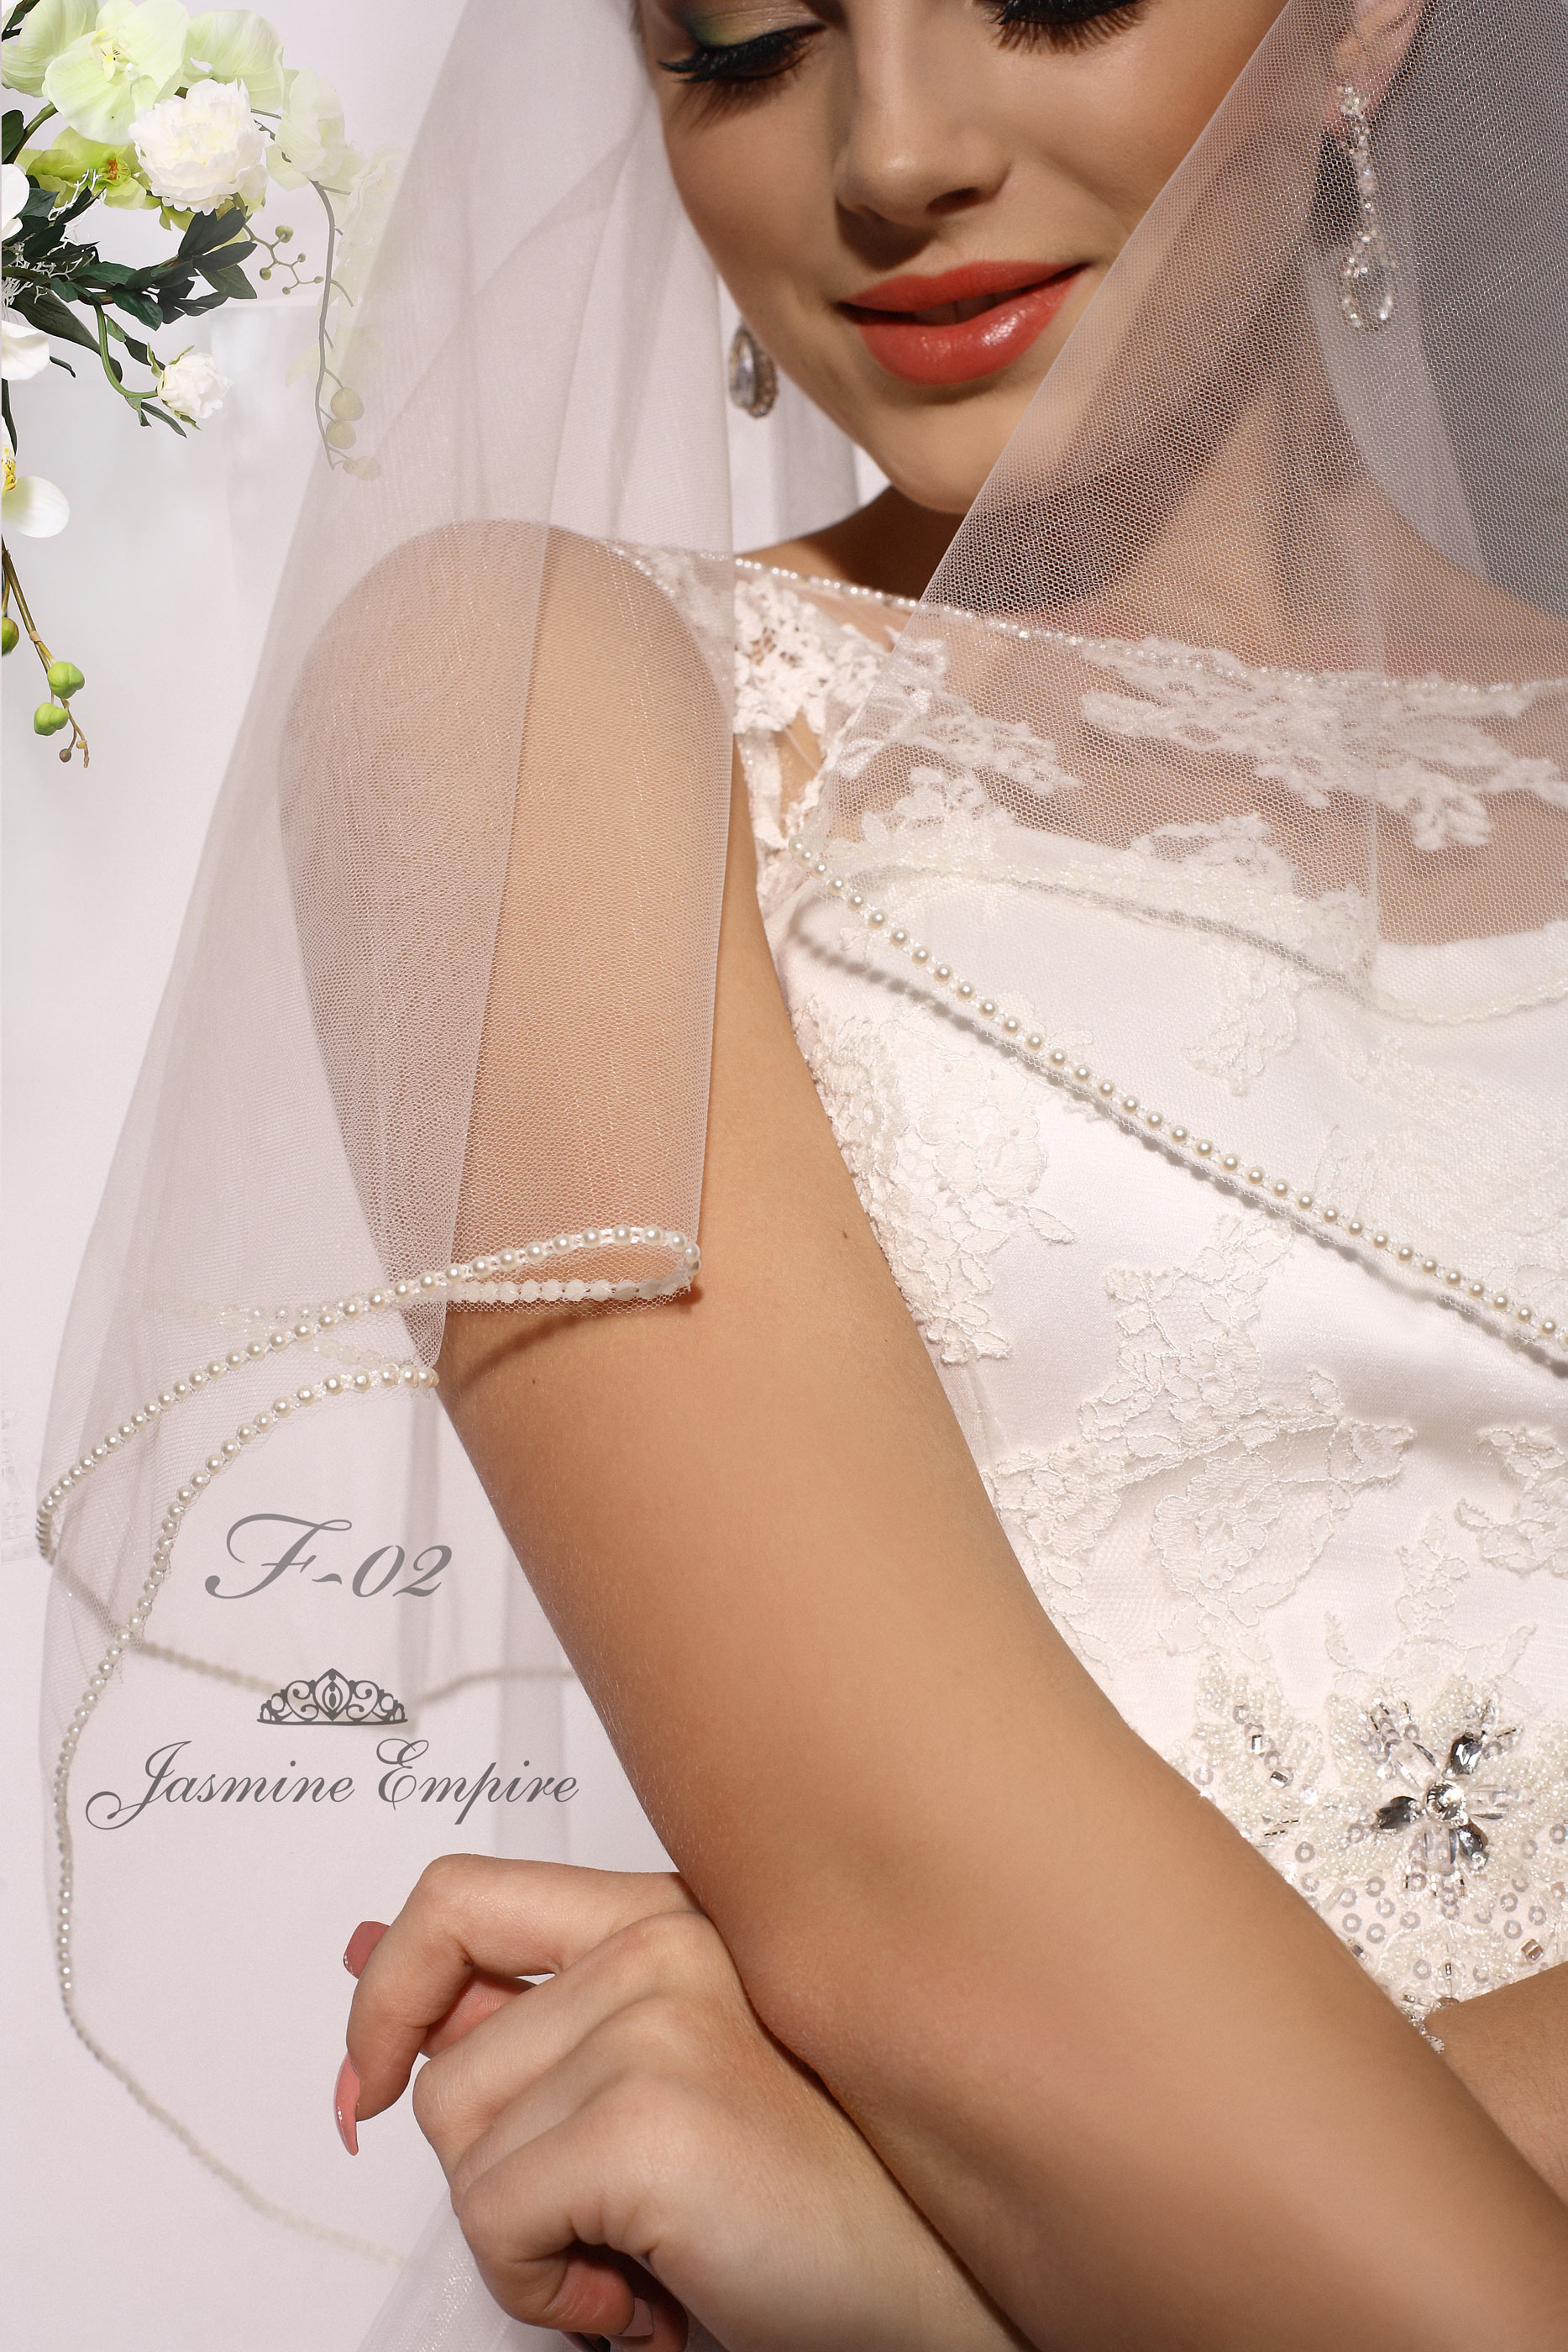 Accessory F-02 for the bride Foto 2